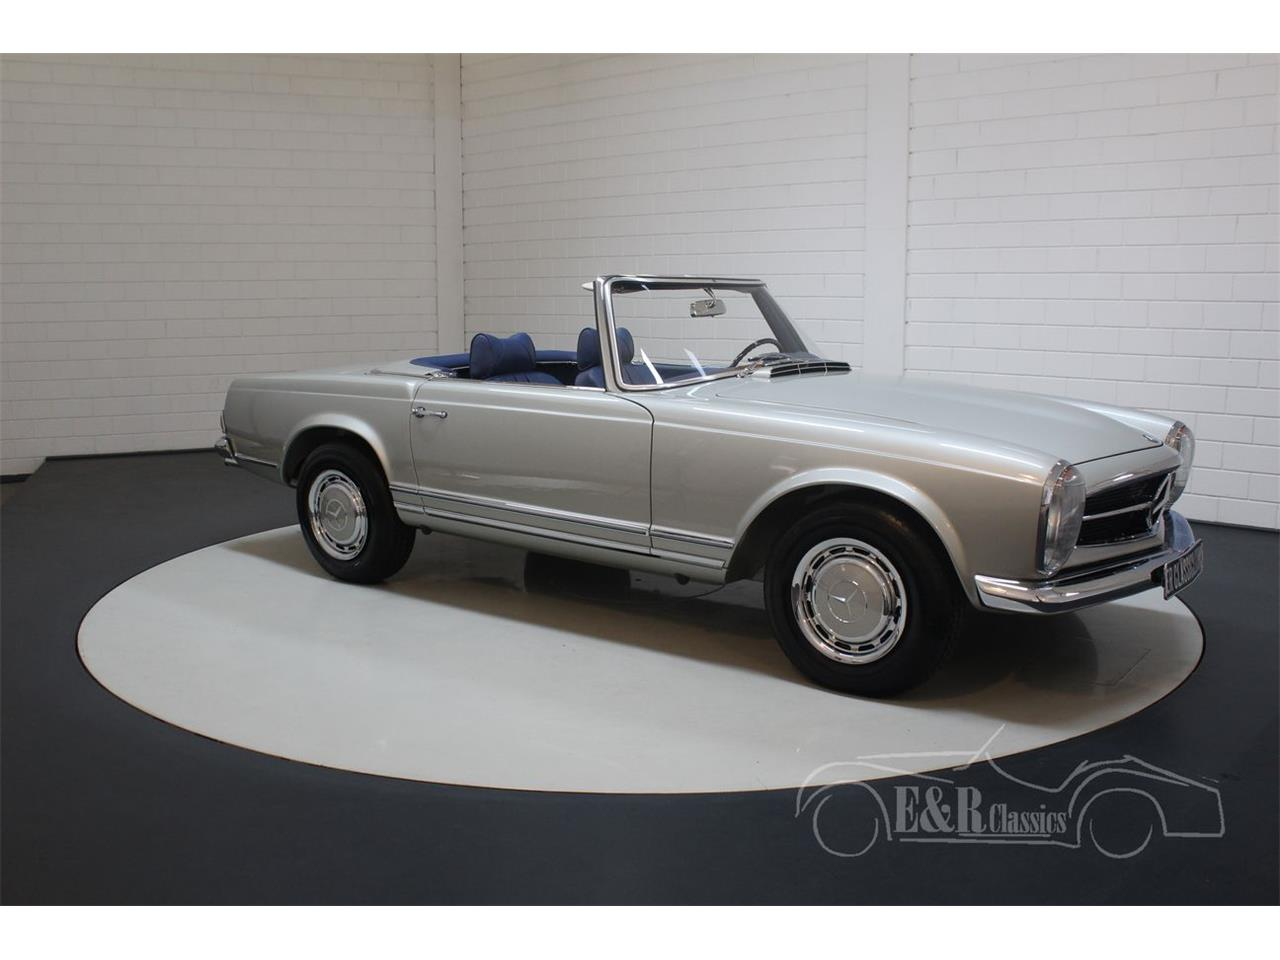 Large Picture of '69 Mercedes-Benz 280SL located in Waalwijk noord brabant - $190,500.00 - Q9A0